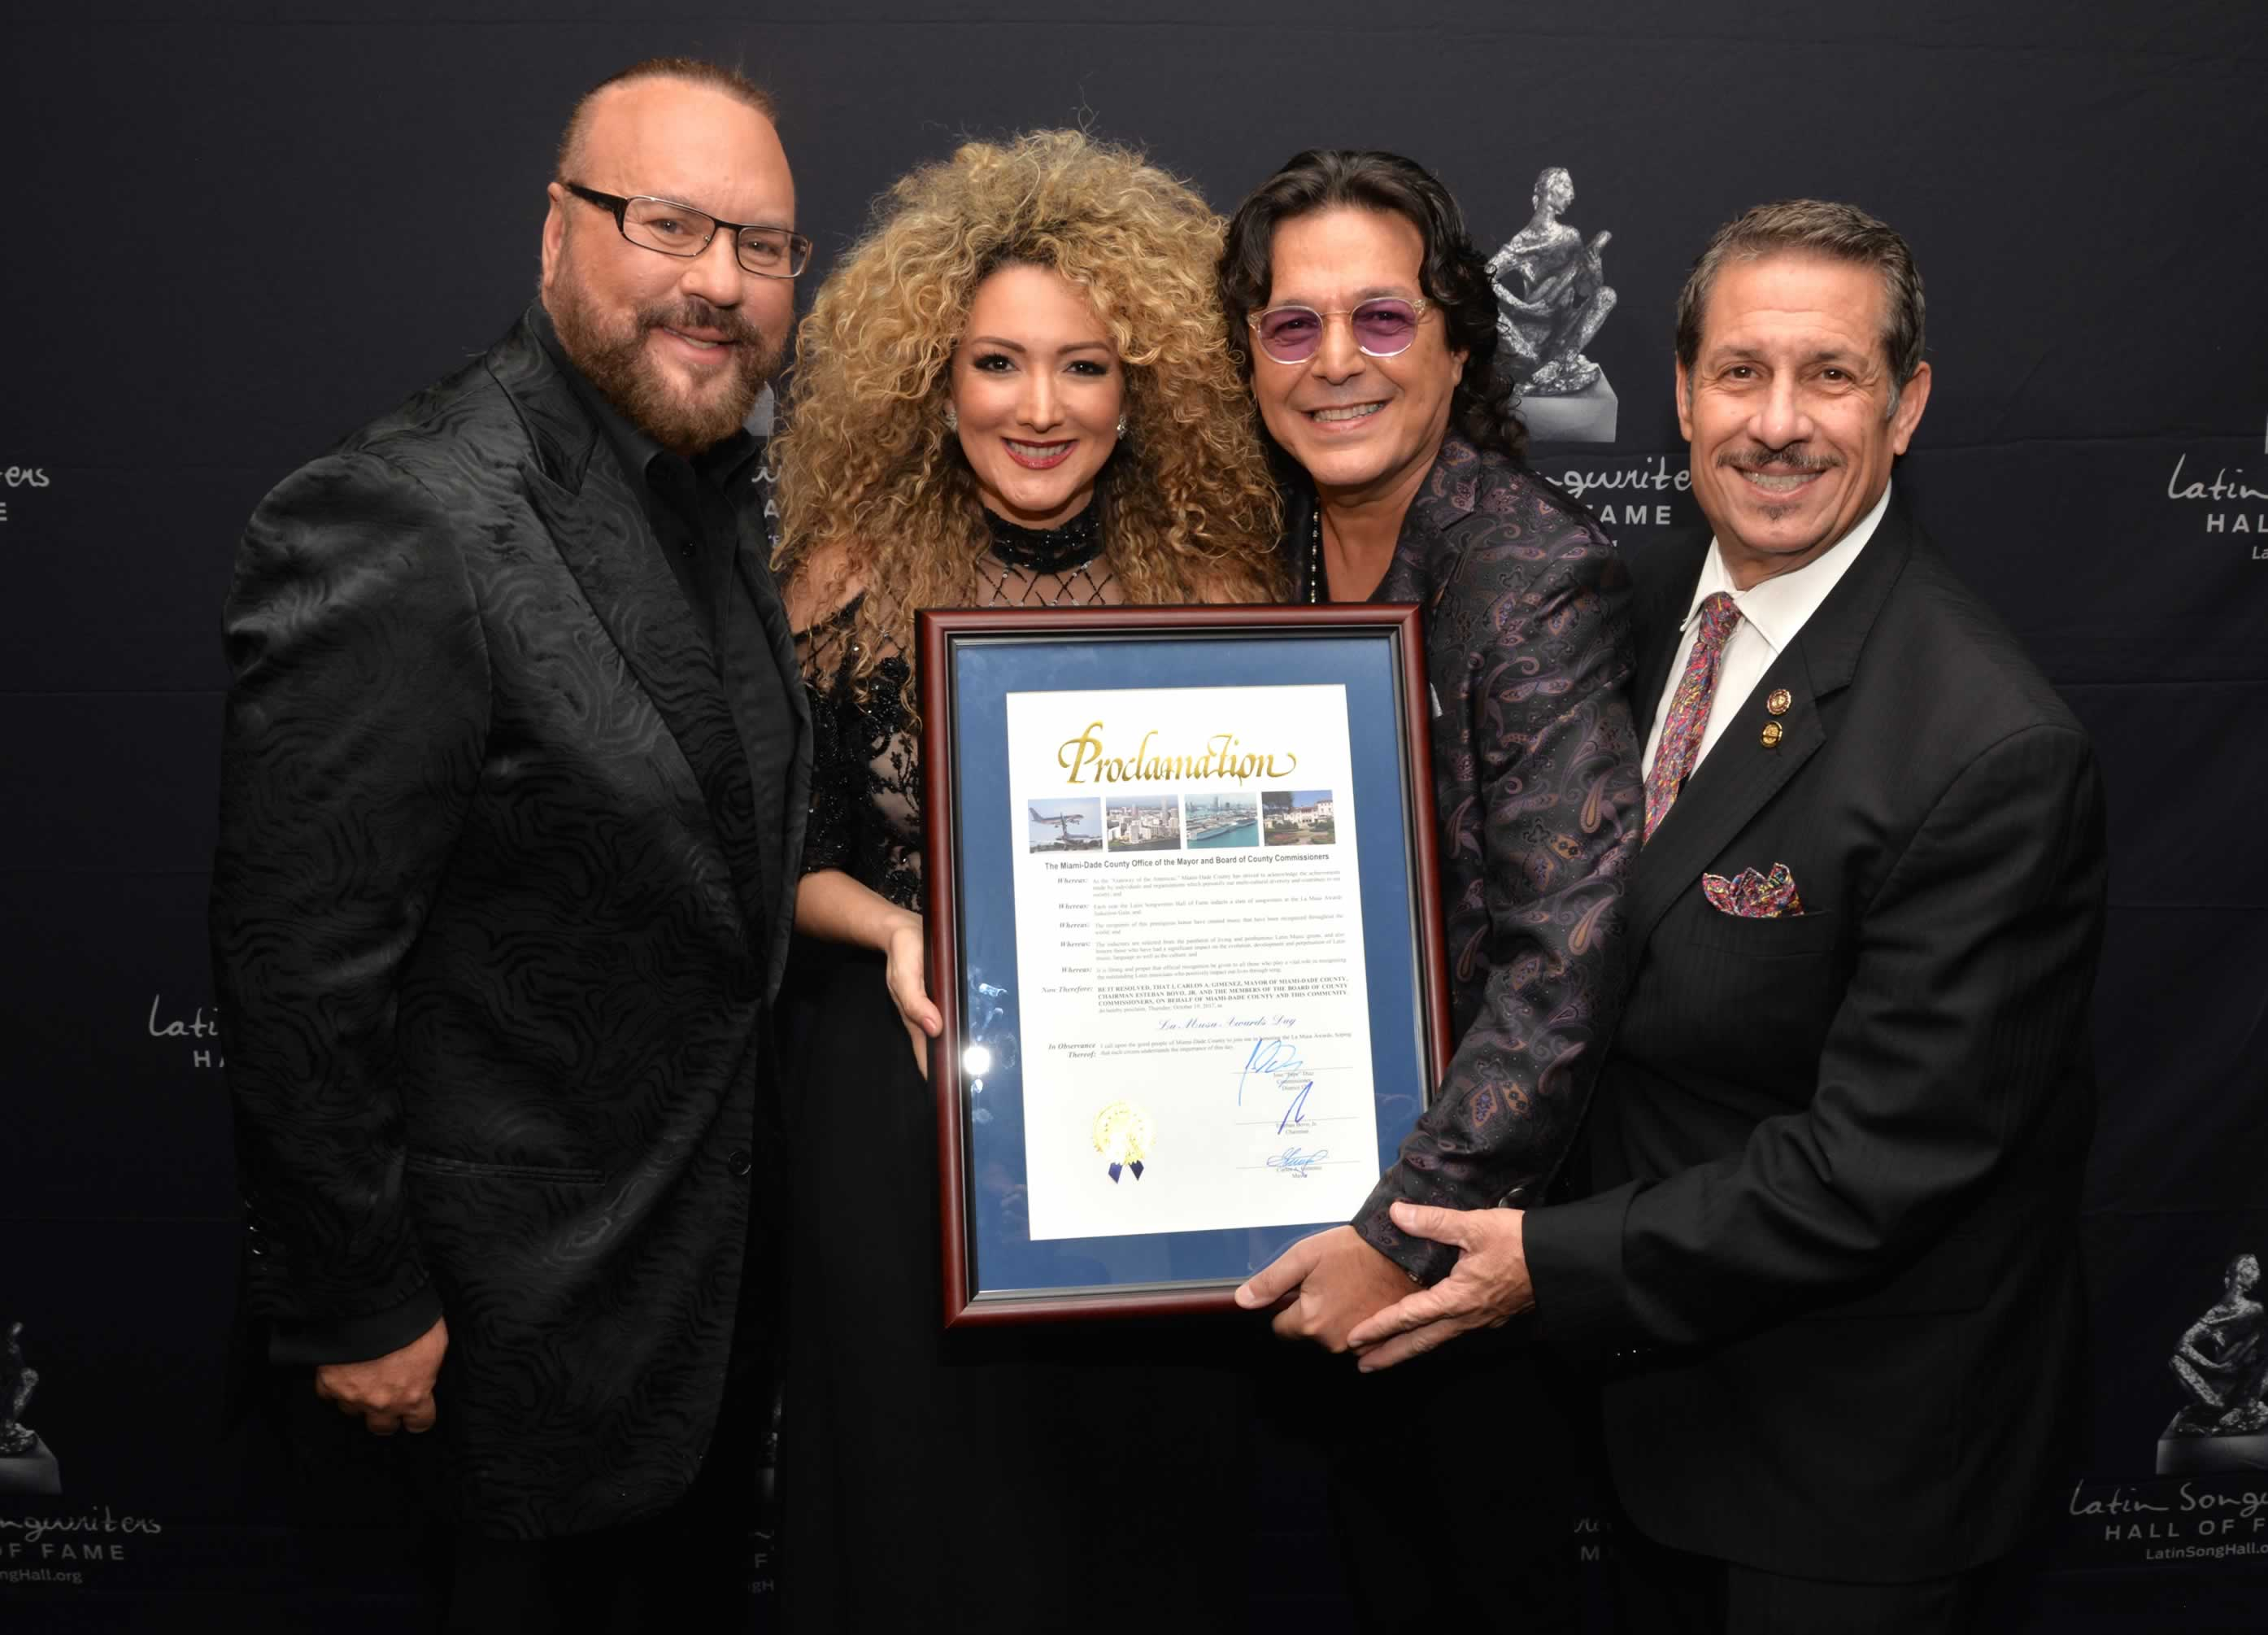 Latin Songwriters Hall of Fame LA MUSA AWARDS 5th Anniversary Induction Gala